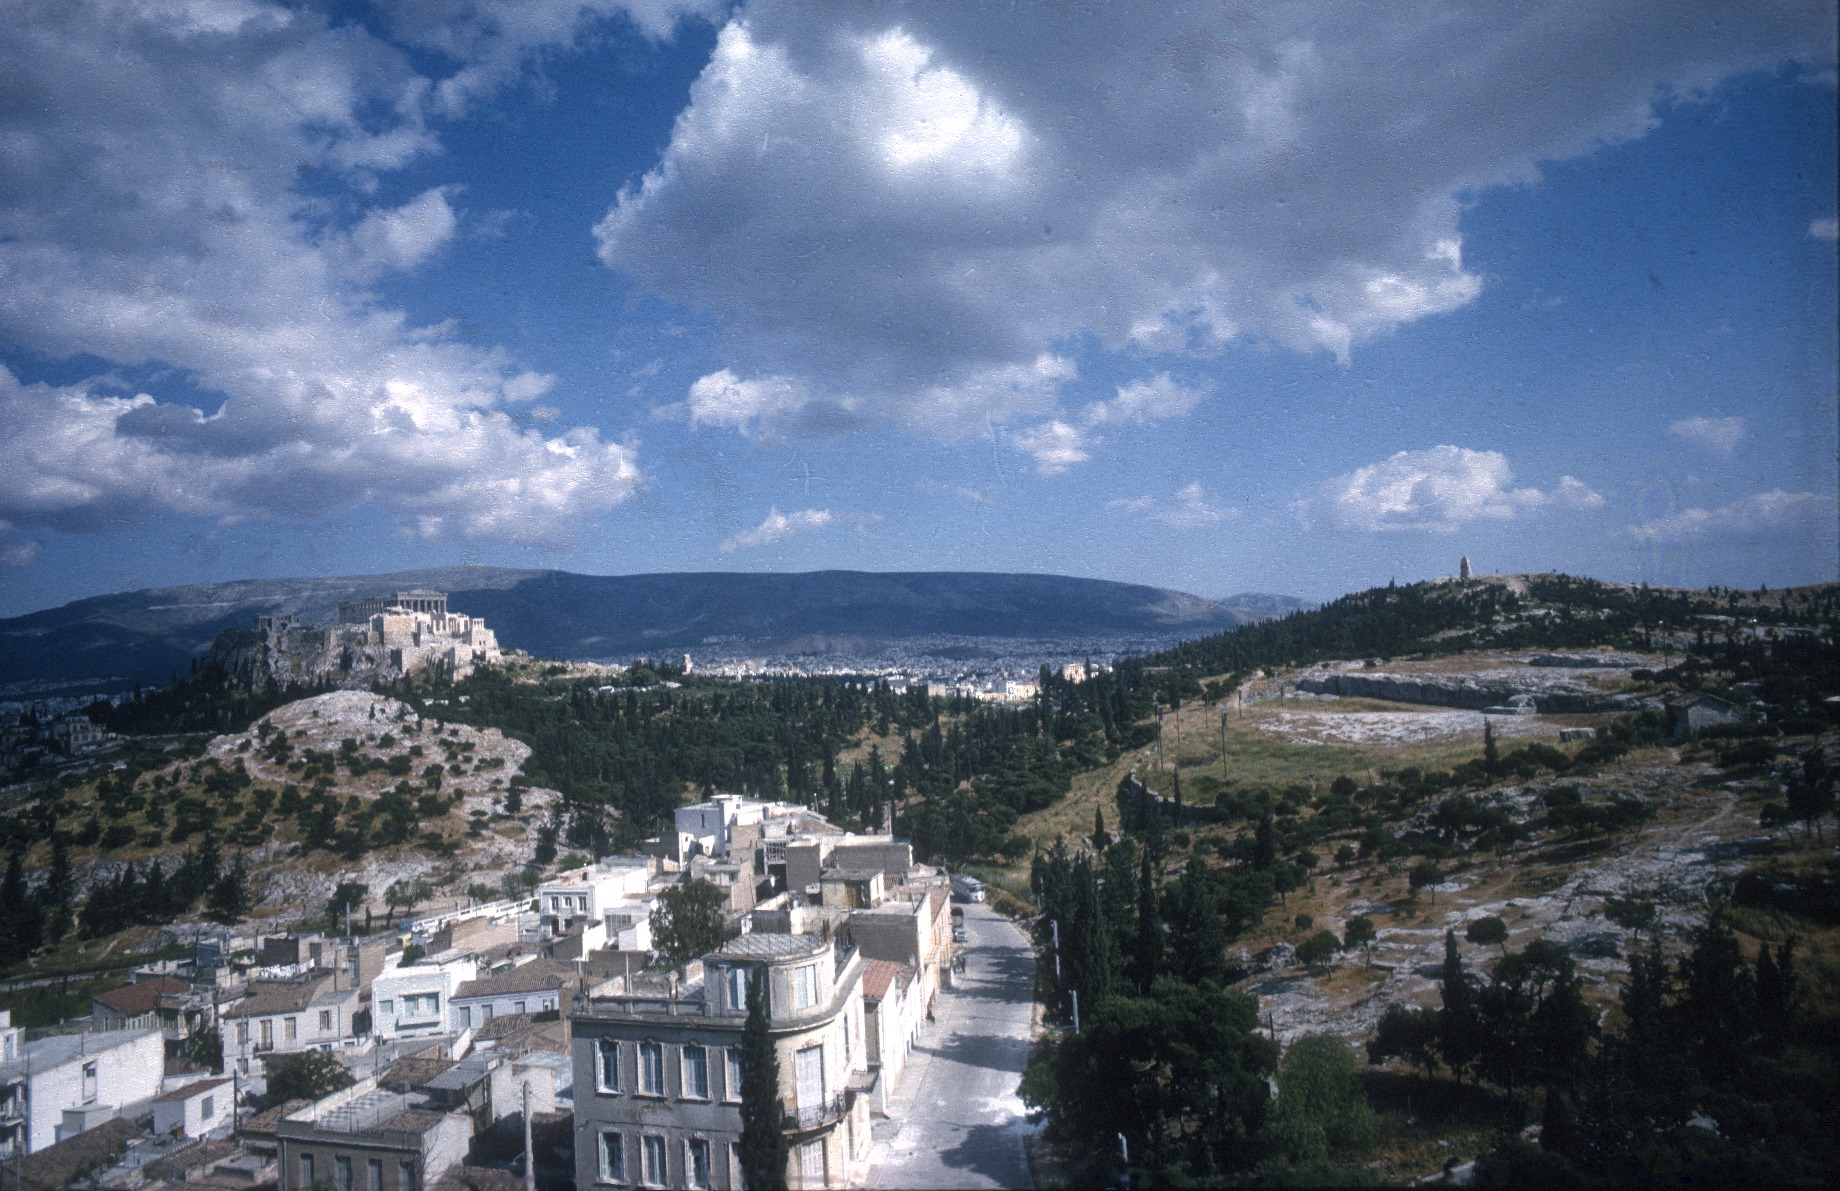 The grey limestone lost its eminent presence in the landscape to the planted trees (American School of Classical Studies at Athens, Agora Excavations, 2004.01.0400 [HAT 64-169]).